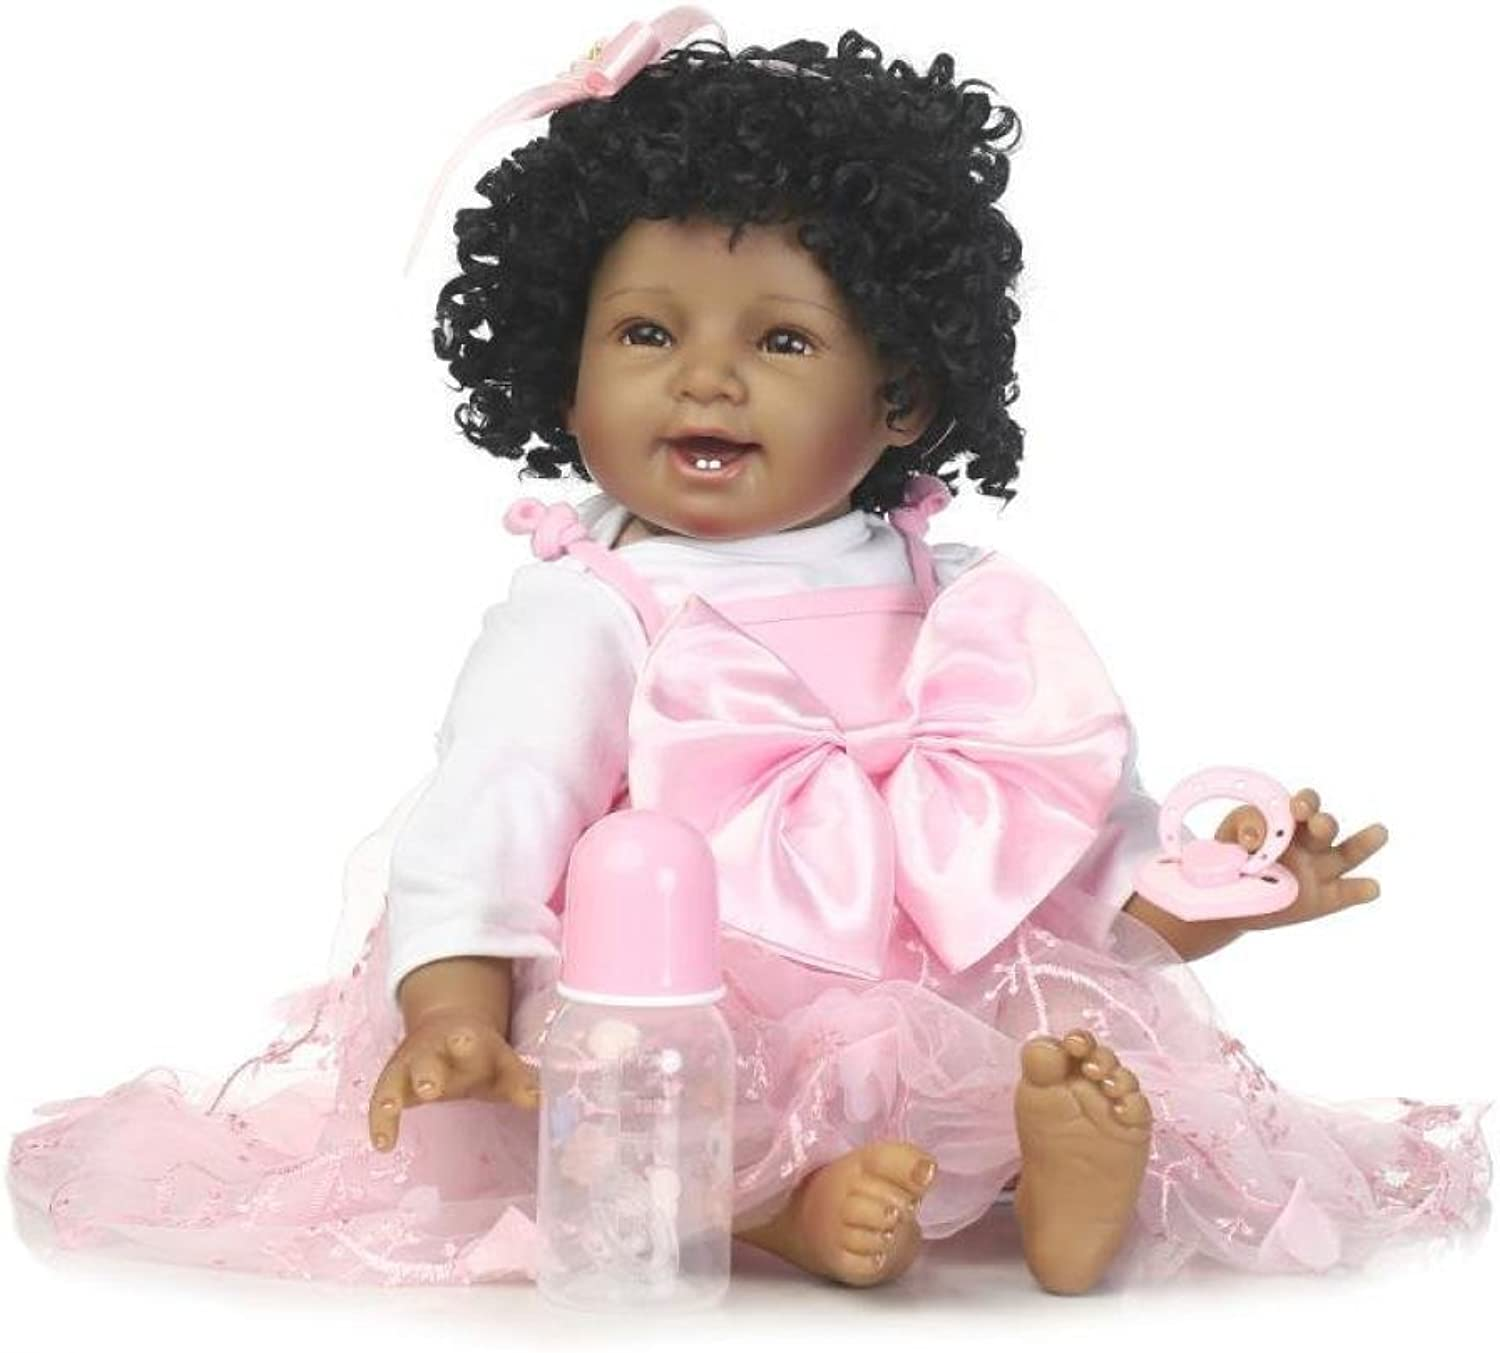 JHGFRT 55 cm Reborn Babypuppen Junge Baby Doll Look Real Silikon